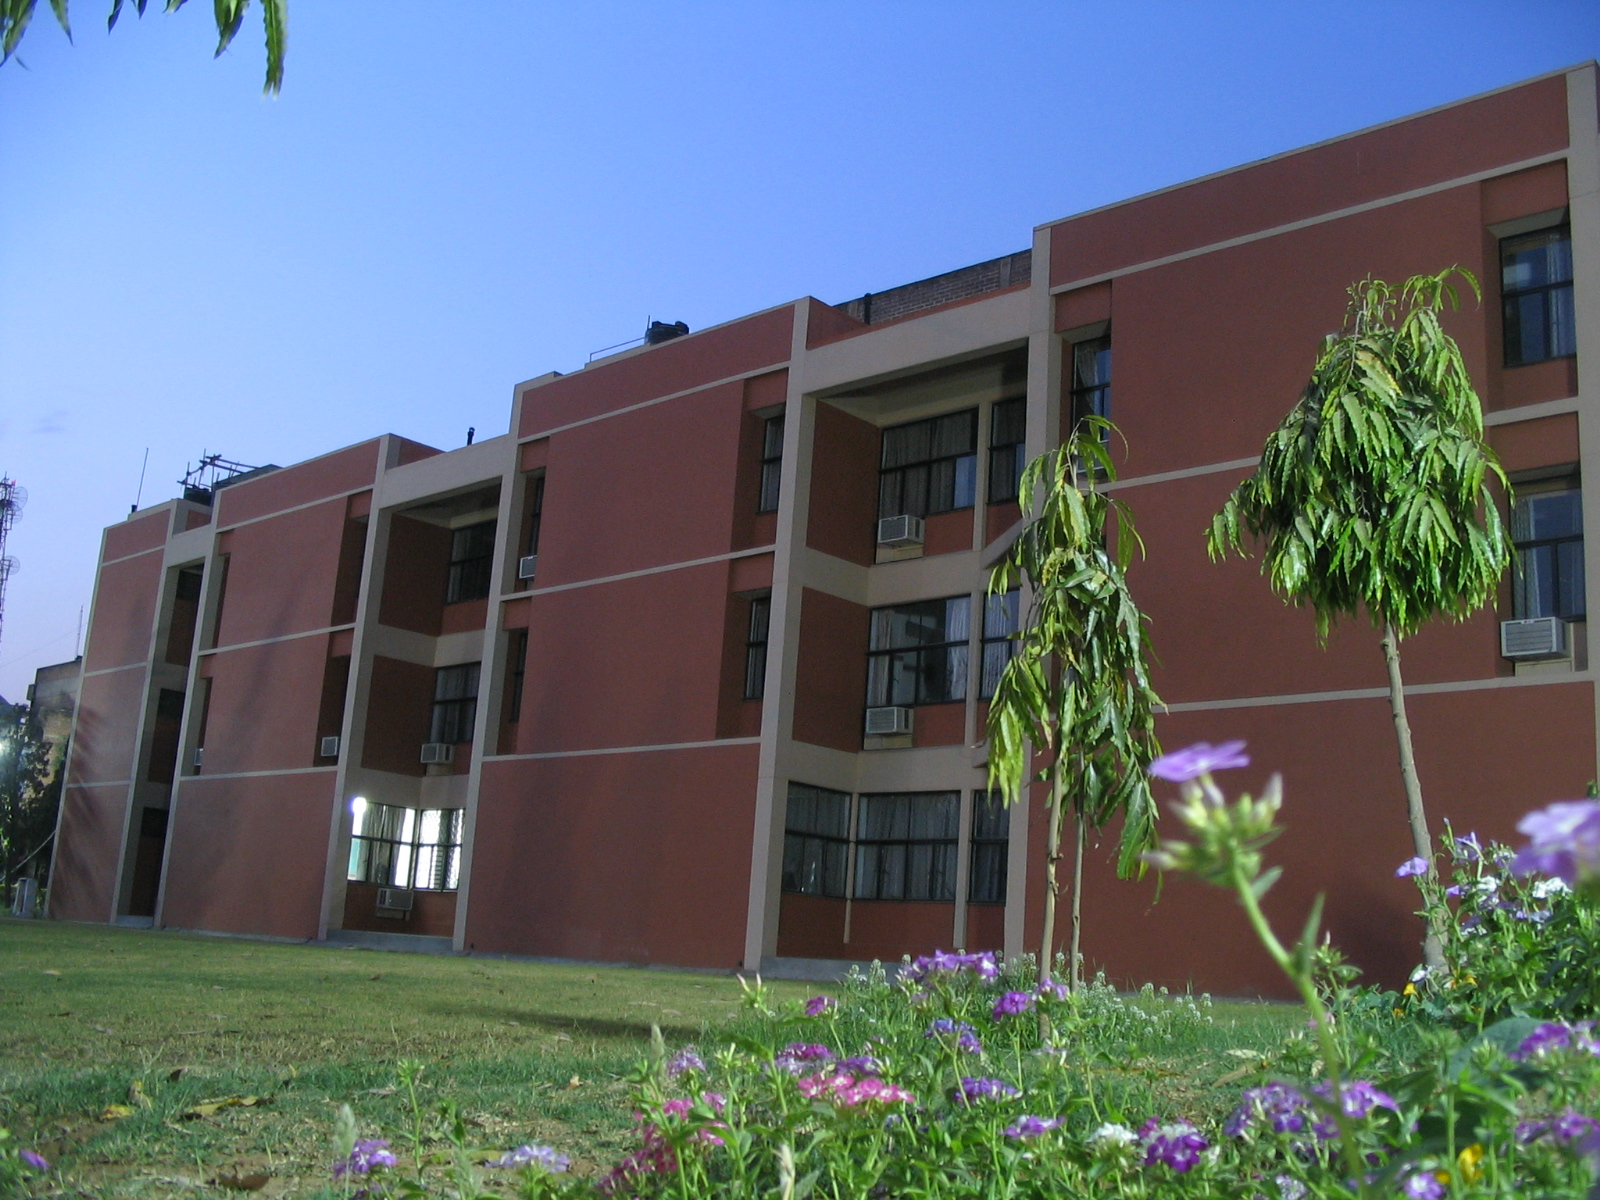 main office. Main Office. File:main Office Building, Isi Delhi.jpg